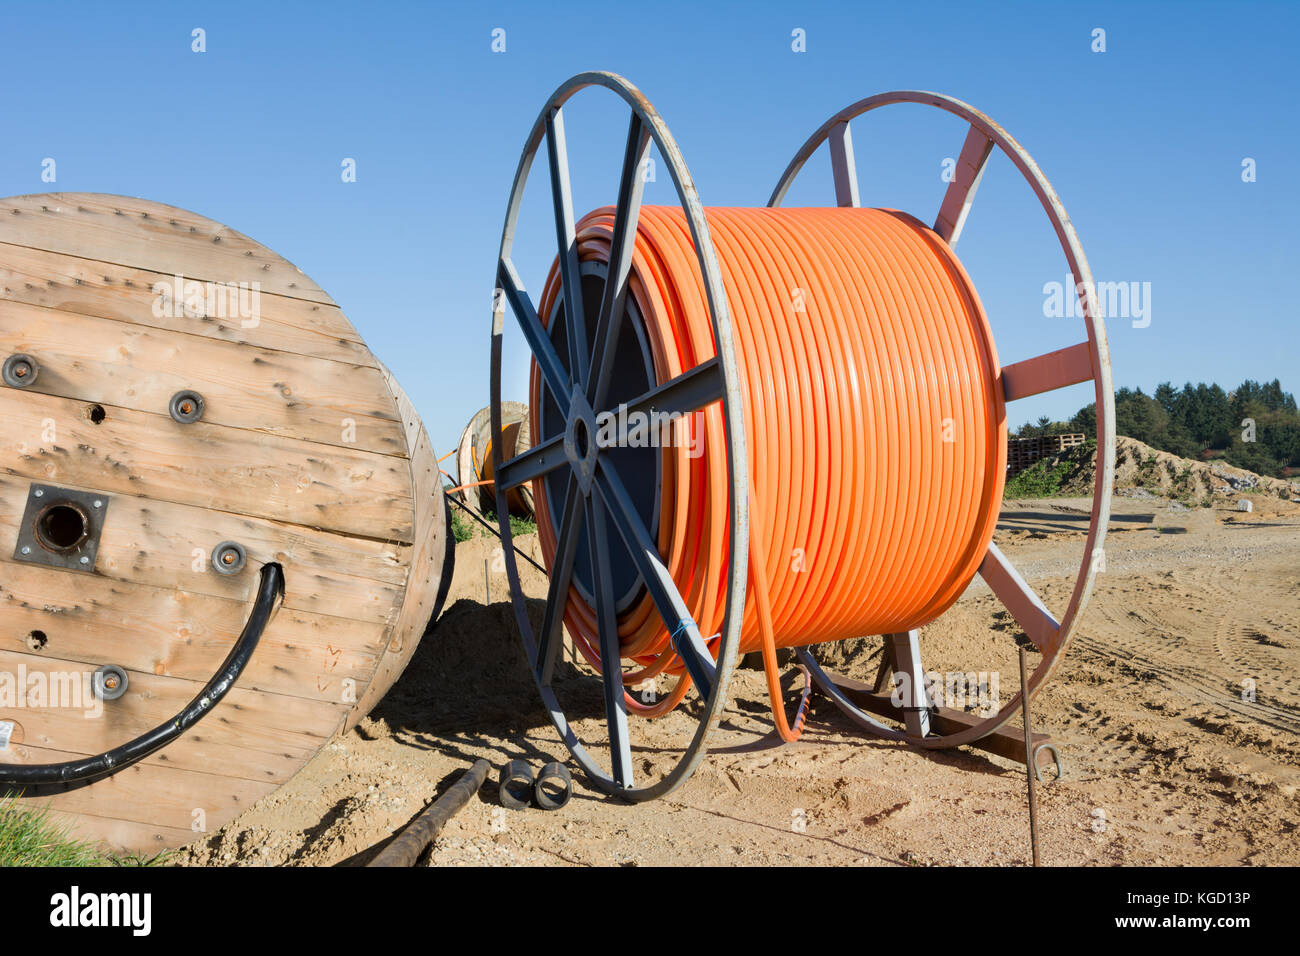 Cable Reel Stock Photos Amp Cable Reel Stock Images Alamy